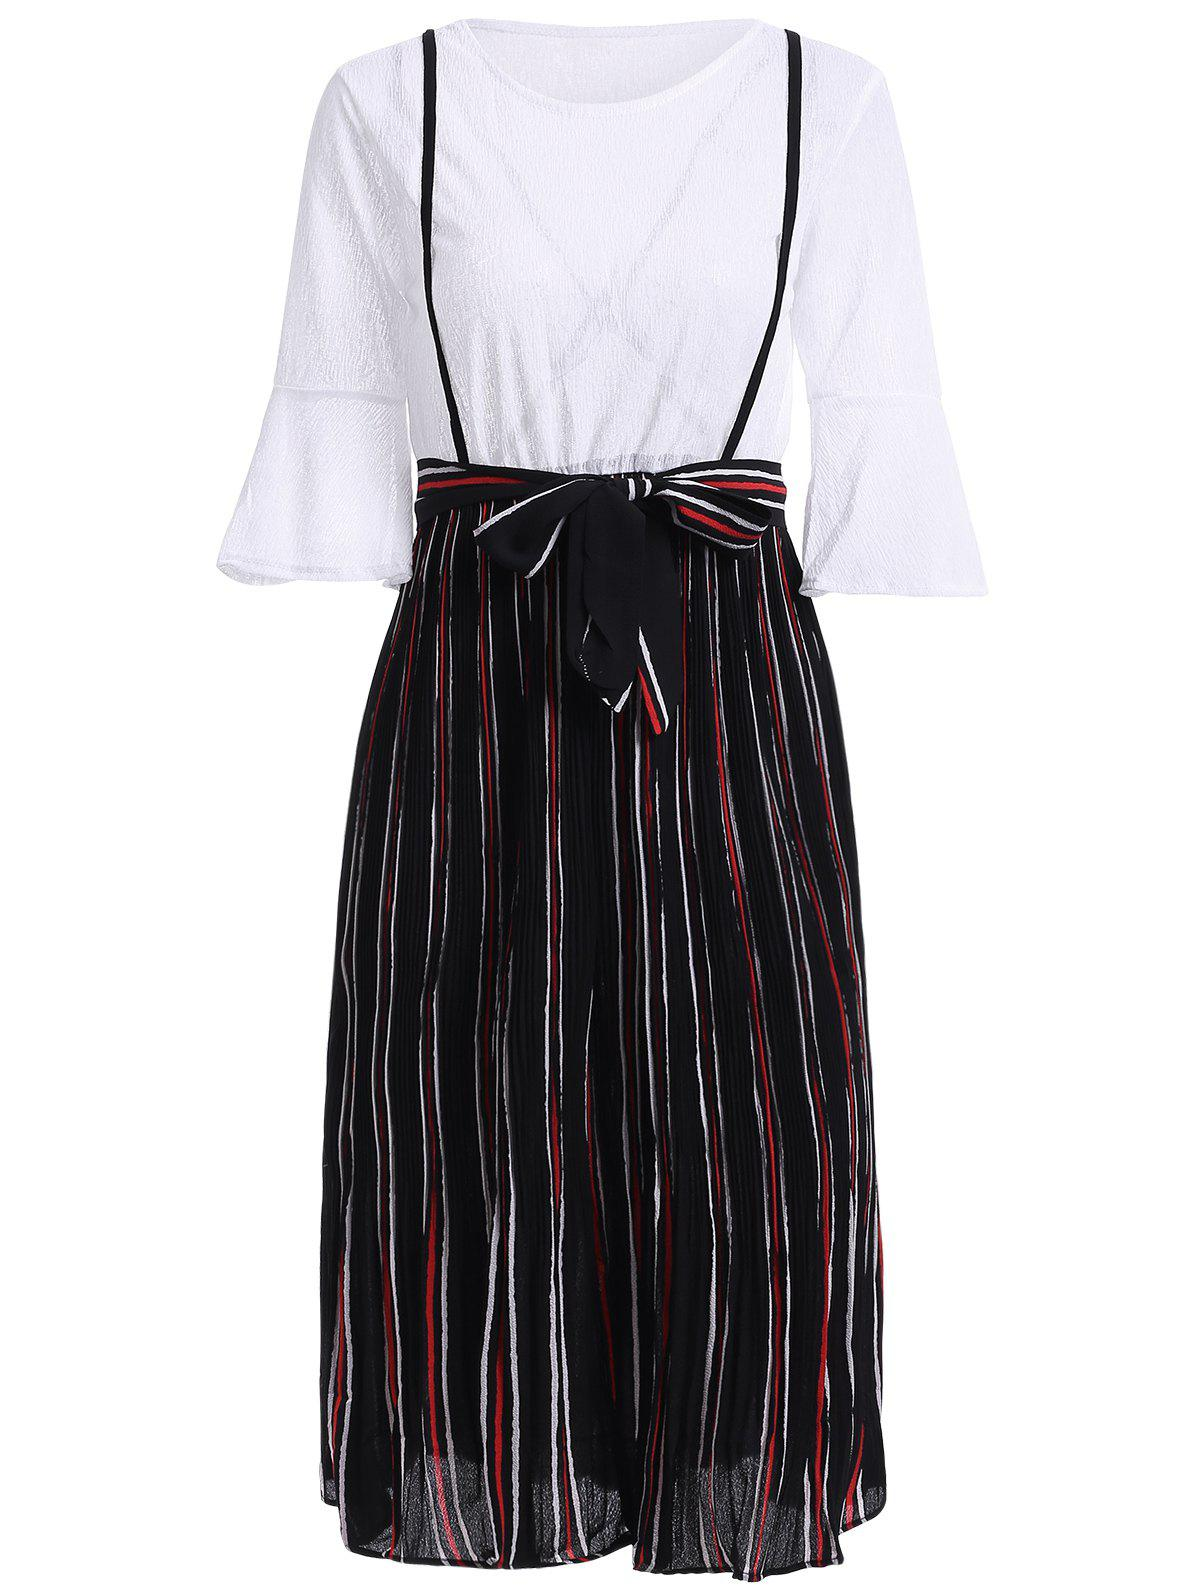 Stylish Flare Sleeve Striped Fake Twinset Dress For Women